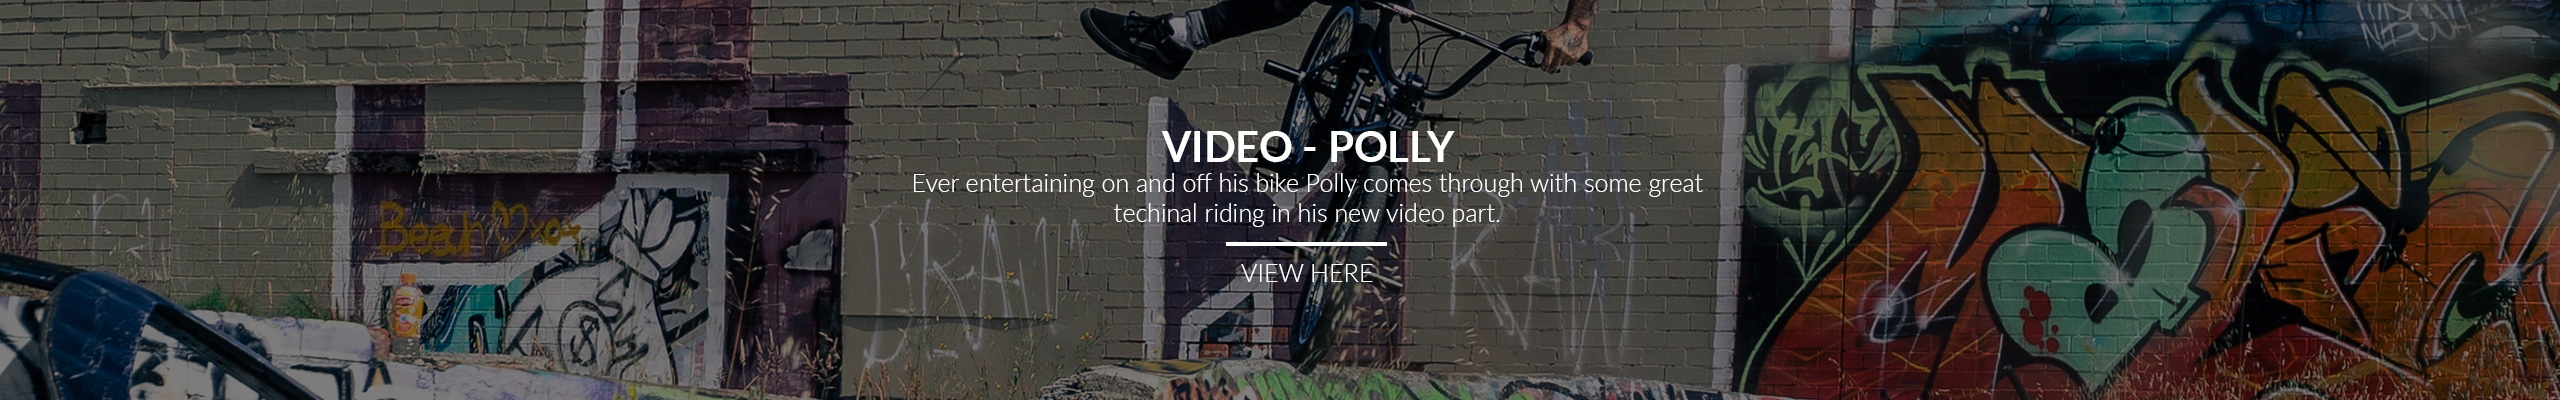 polly video